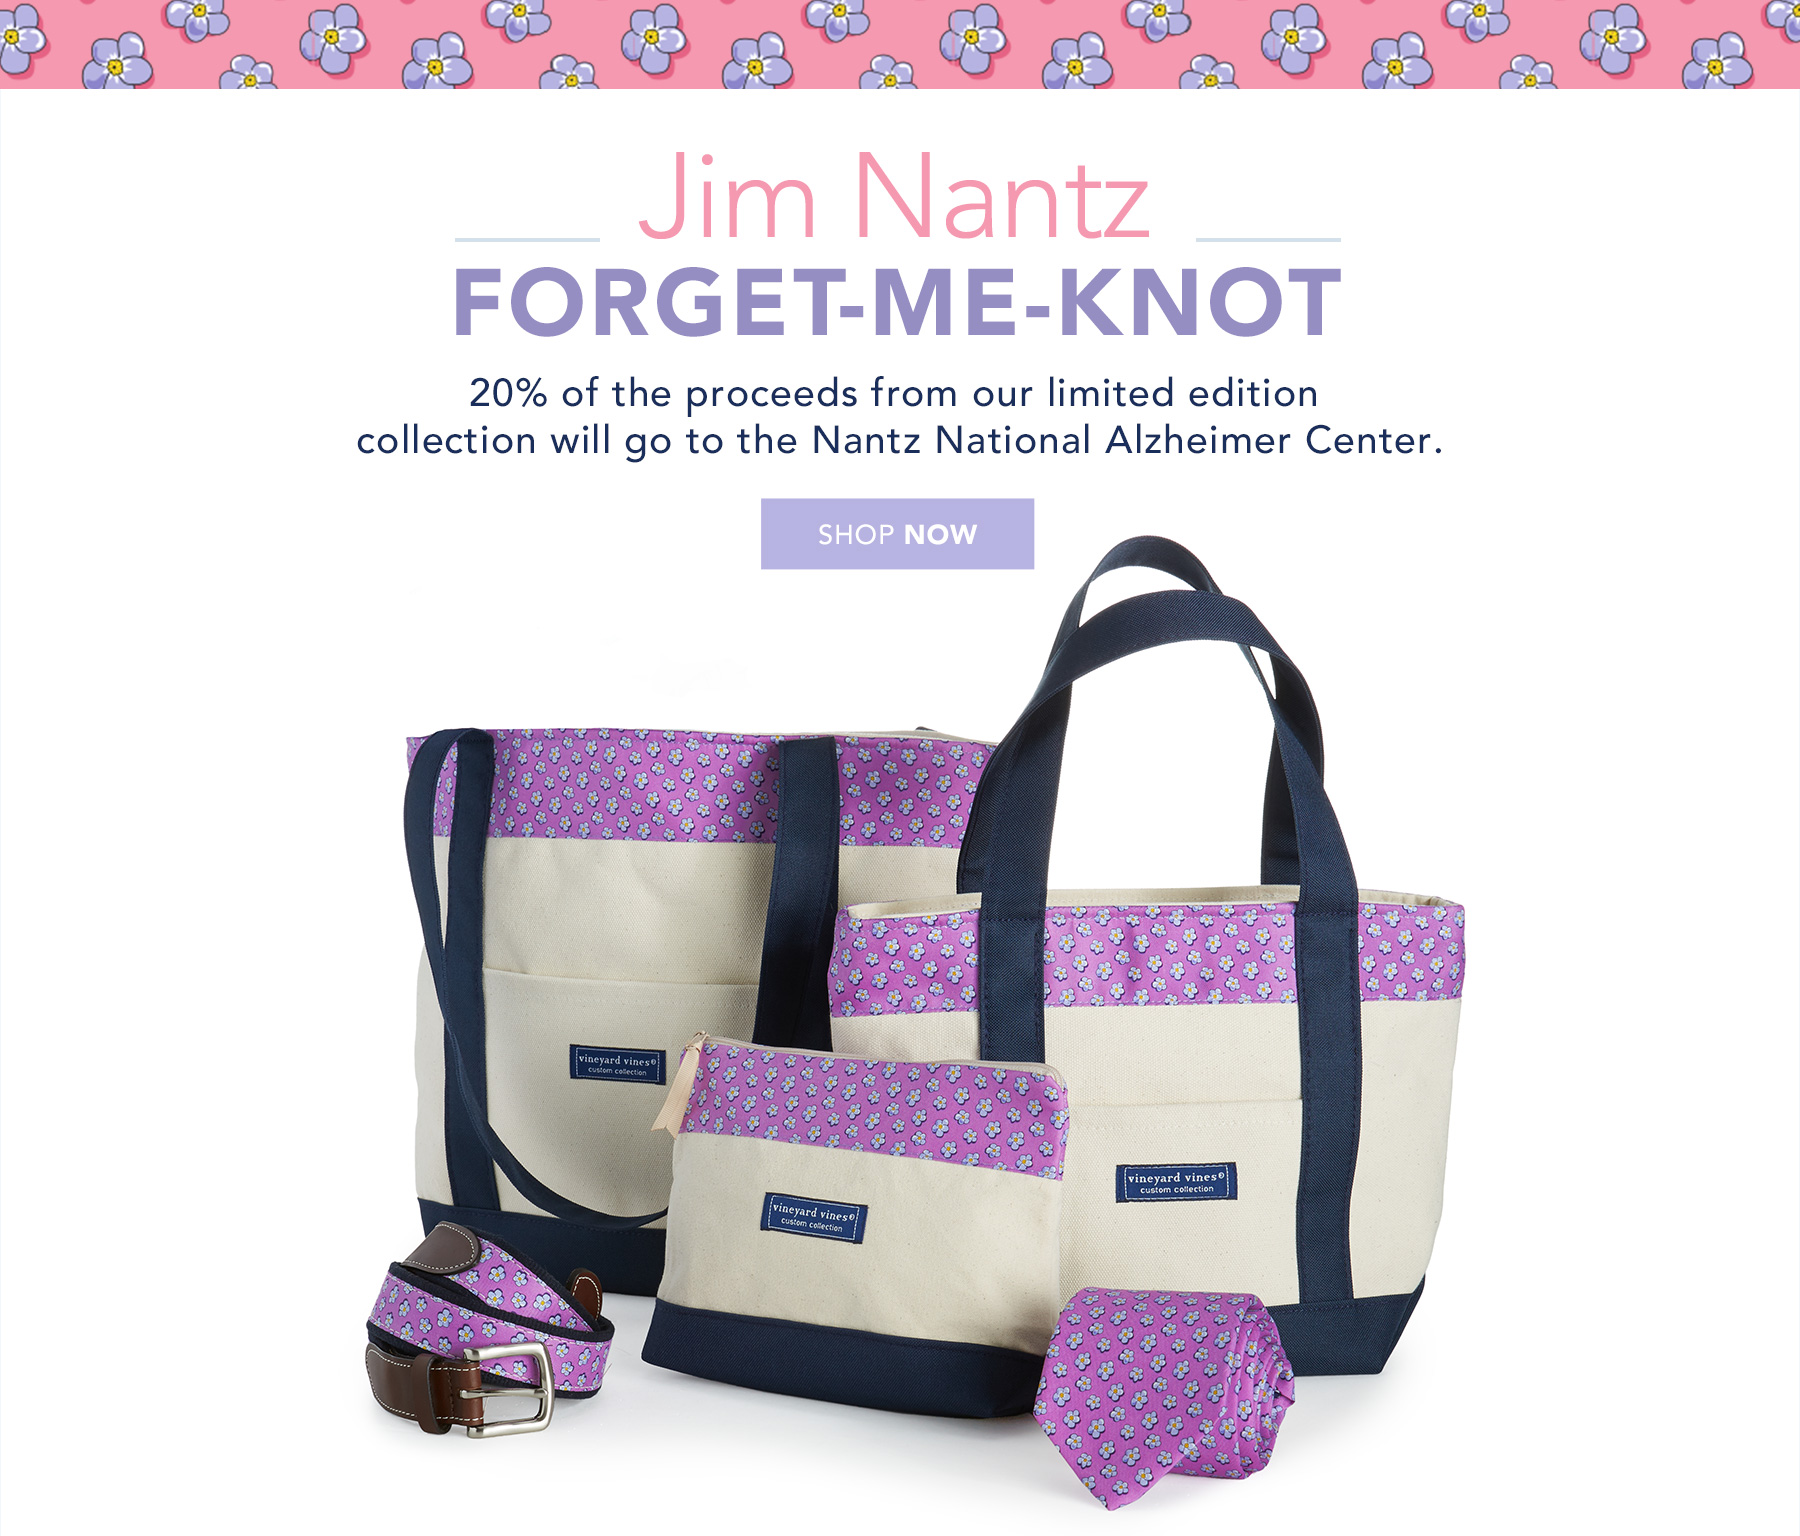 20% of the proceeds from our limited edition collection will go to the Nantz National Alzheimer Center. Shop Now.